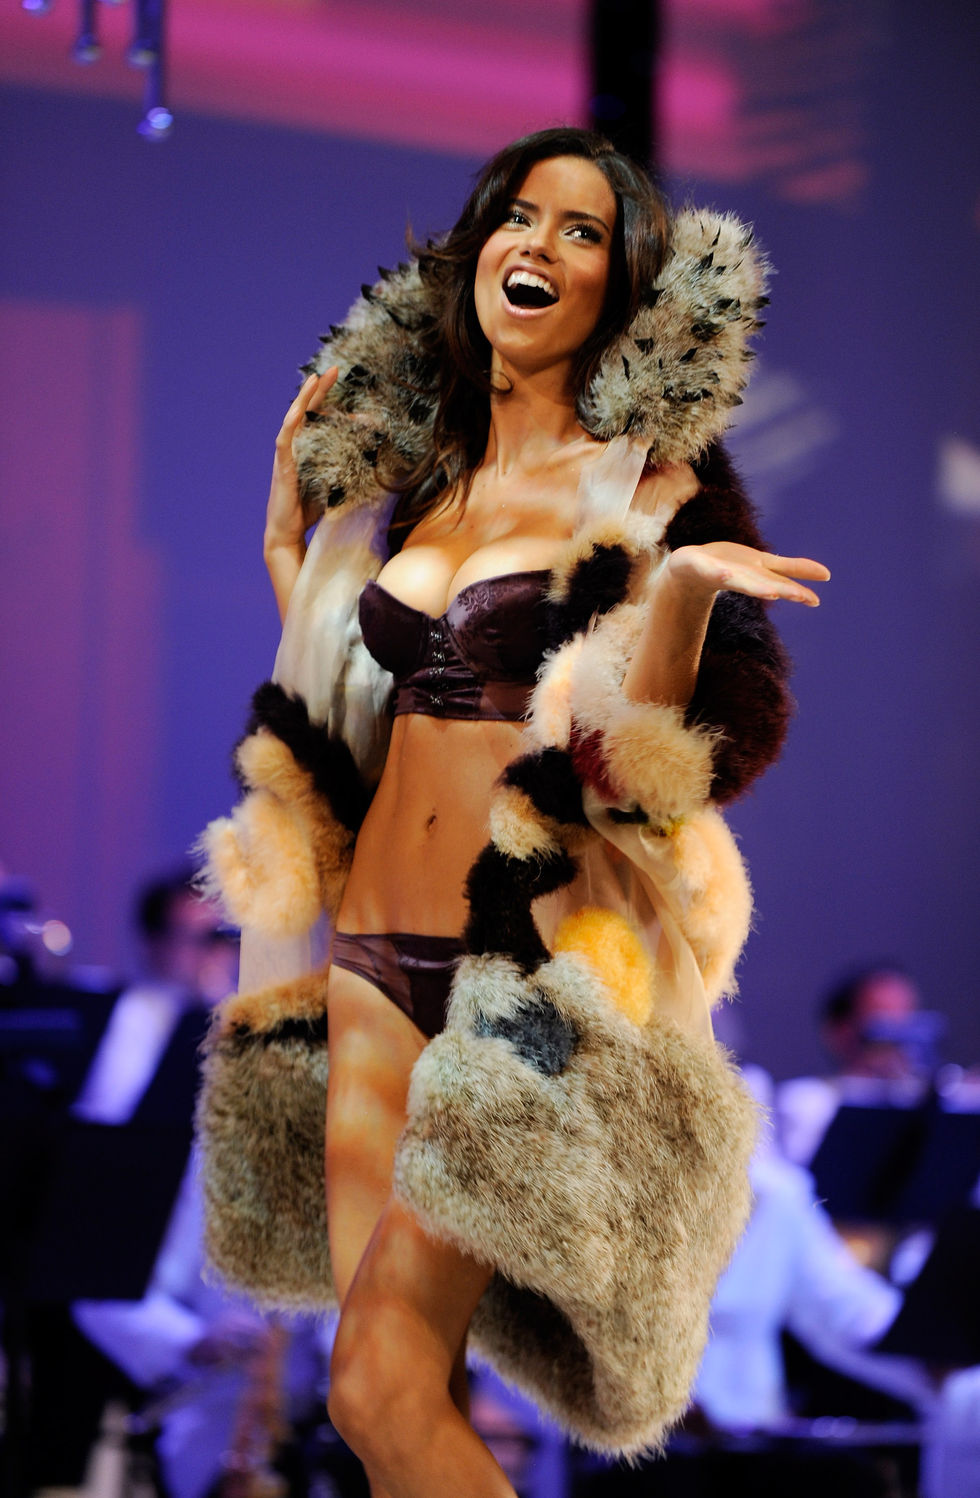 adriana-lima-2008-victorias-secret-fashion-show-01